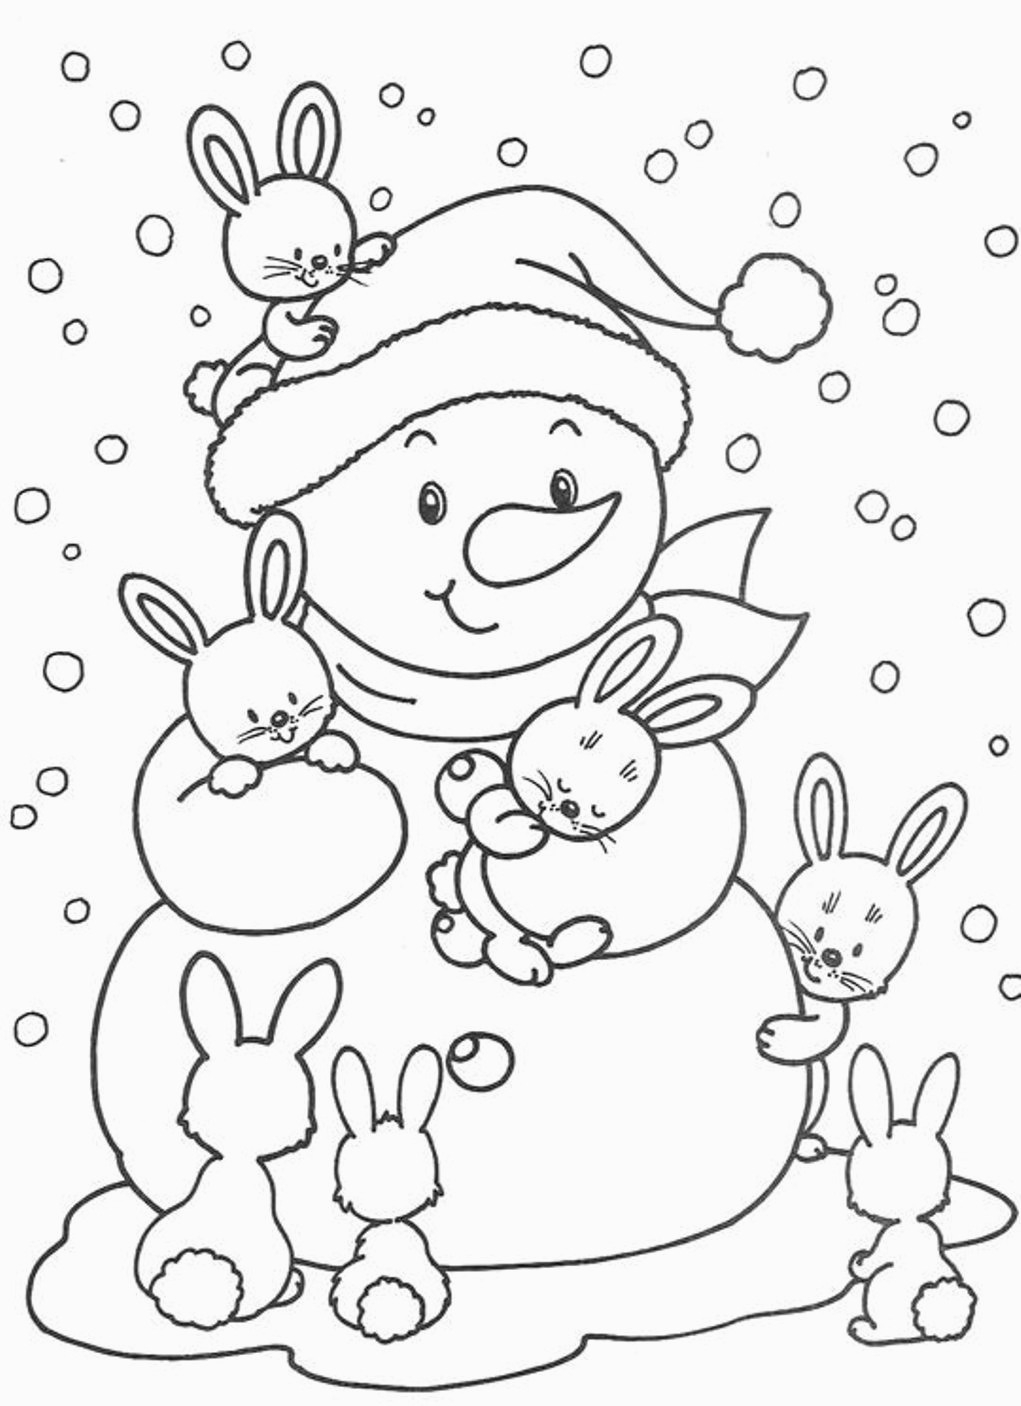 Winter Coloring Pages Printable Fun Winter Themed Coloring Pages Winter Coloring Pages For Winter